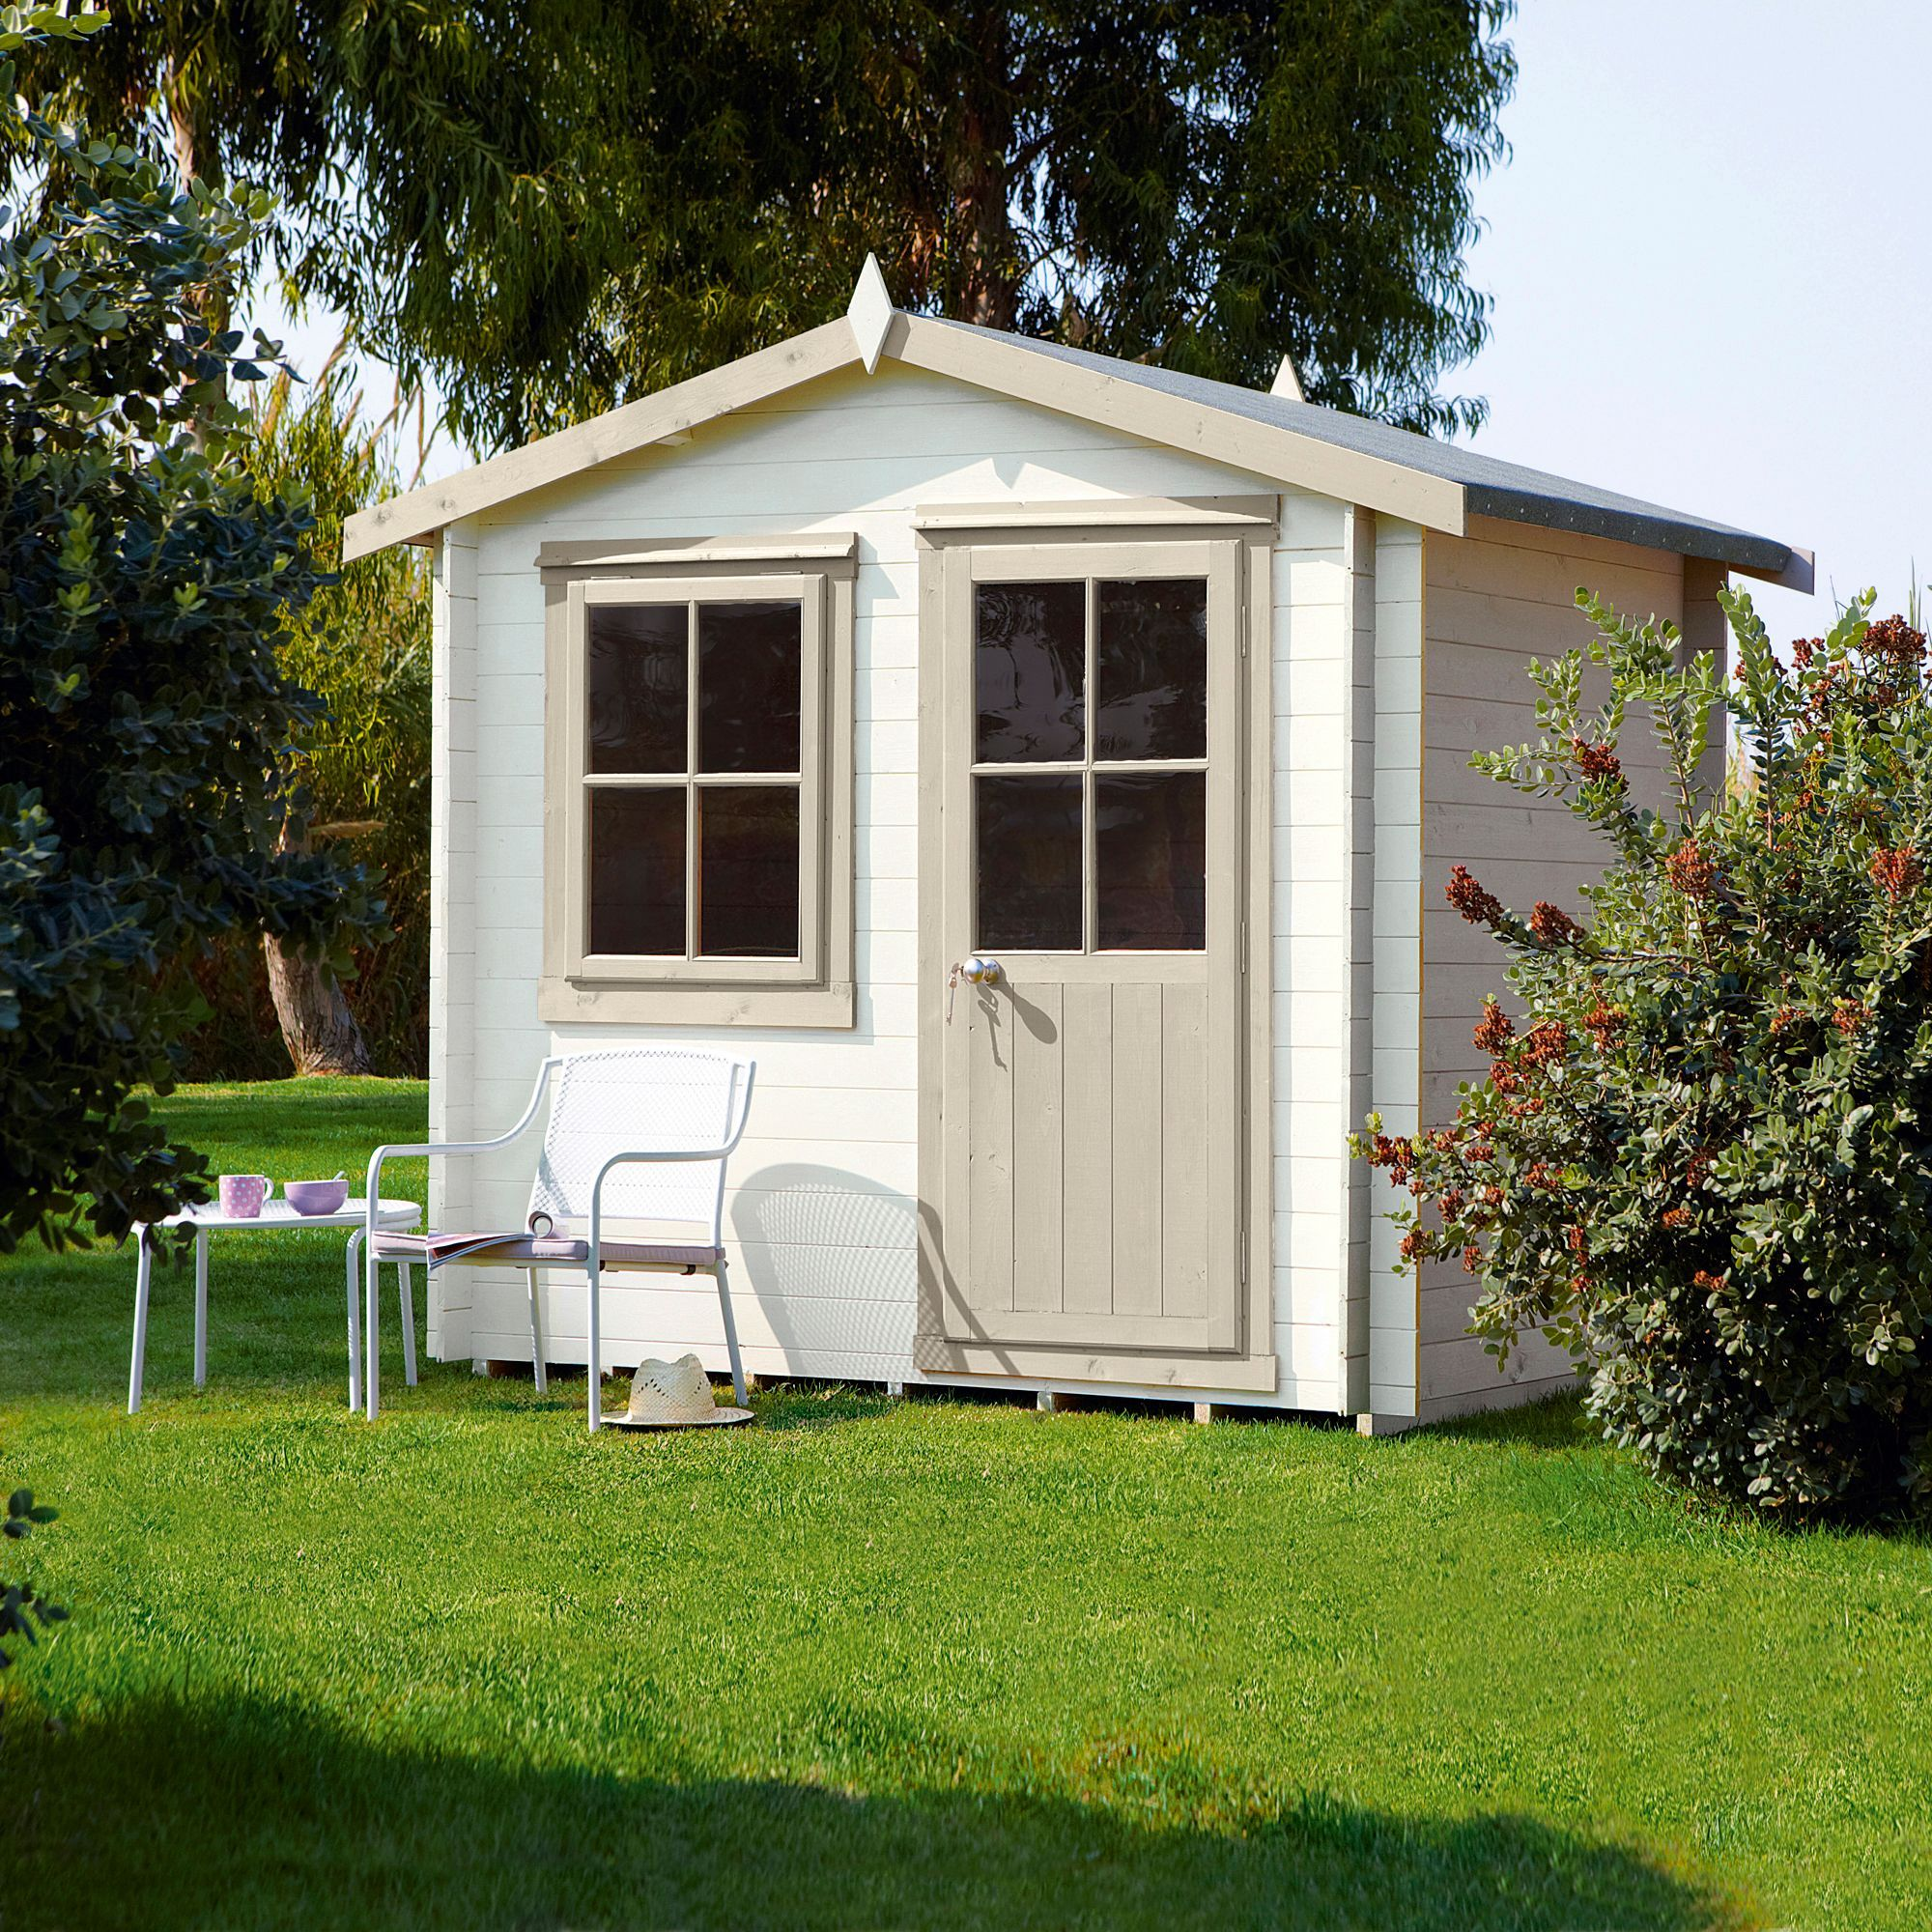 Garden Sheds B Q 8x6 hartley 19mm tongue & groove timber log cabin base included